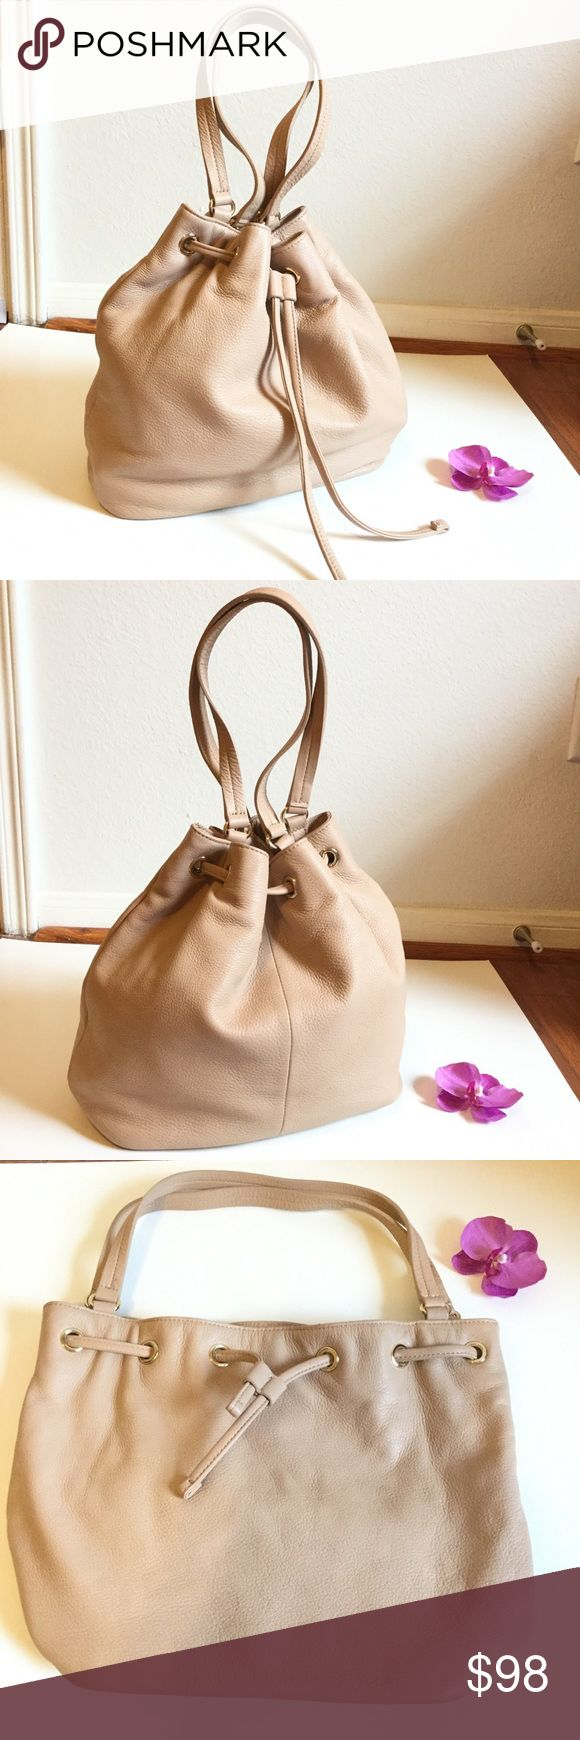 TALBOTS LEATHER BUCKET  BAG👜 Gorgeous soft genuine leather bucket handbag from TALBOTS. In beautiful color tan. Gently worn about 3 times, in excellent condition. Very clean inside and out. 100% cotton lining. Hold so much stuffs, one zipper pouch, 1 phone pouch, & 1 accessory pouch. Shiny gold hardware. Great size for every day essentials,original: $200 + tax. Pls no low ball offer. Poshmark takes 20% fee. Thanks for shopping ❤️🌹 Talbots Bags